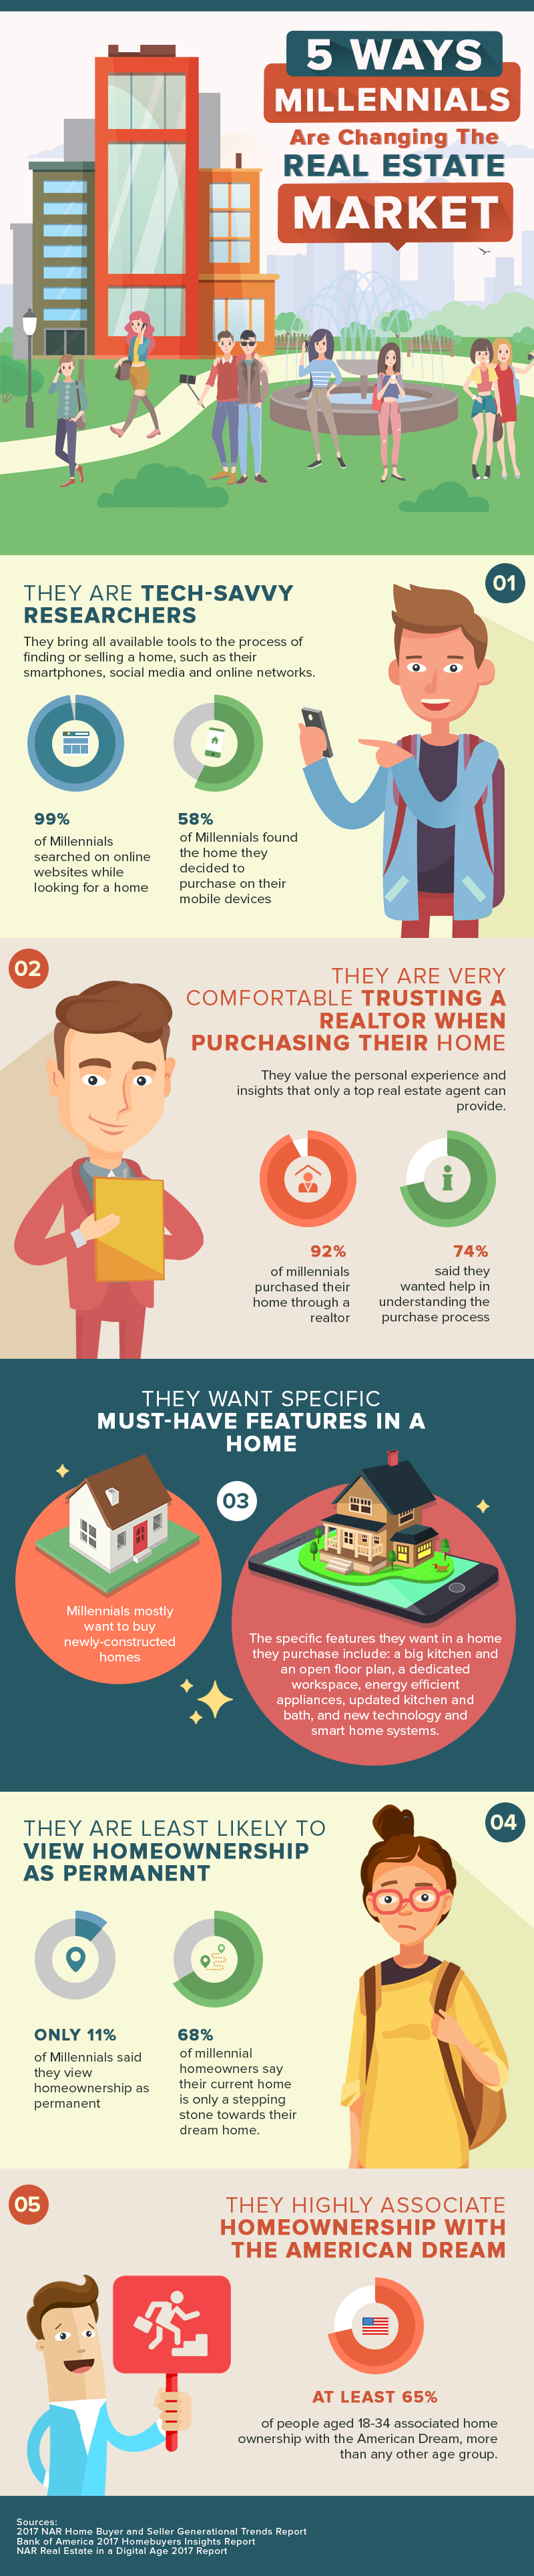 Ways Millennials Are Changing The Real Estate Scene (1).jpg